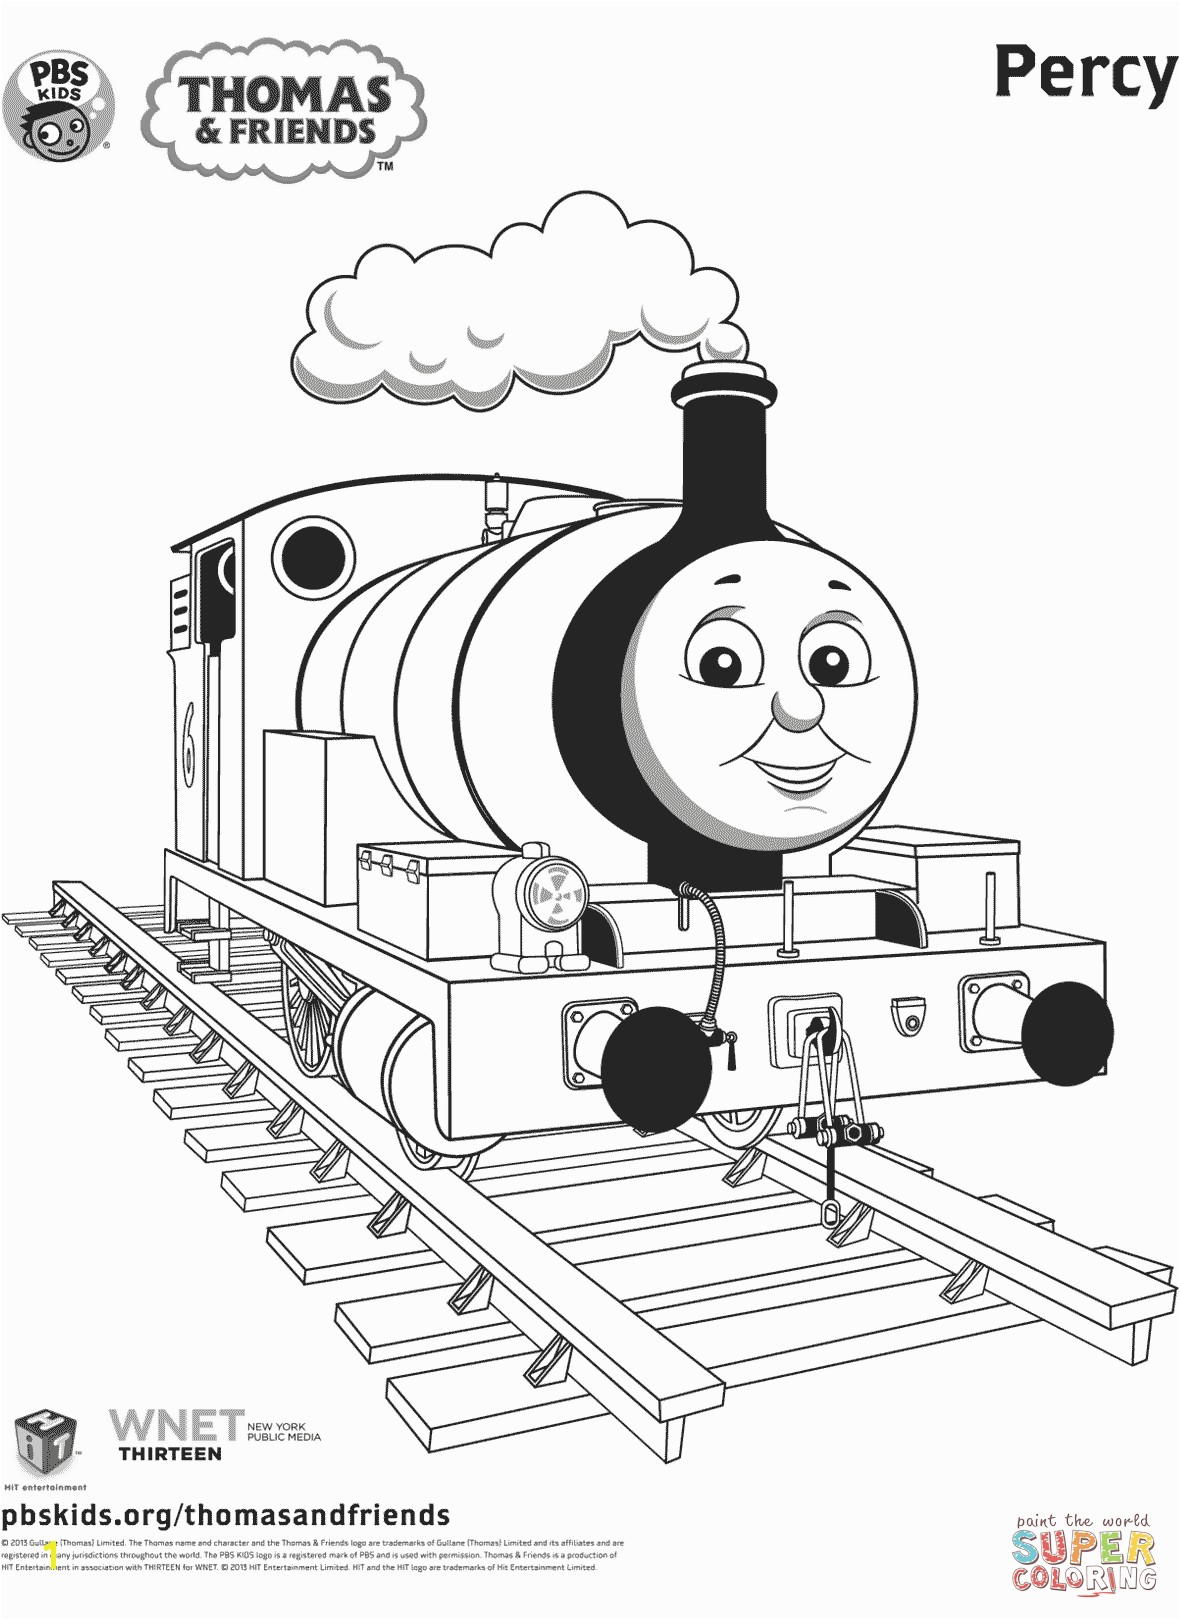 10 Gellery of thomas the train coloring sheets